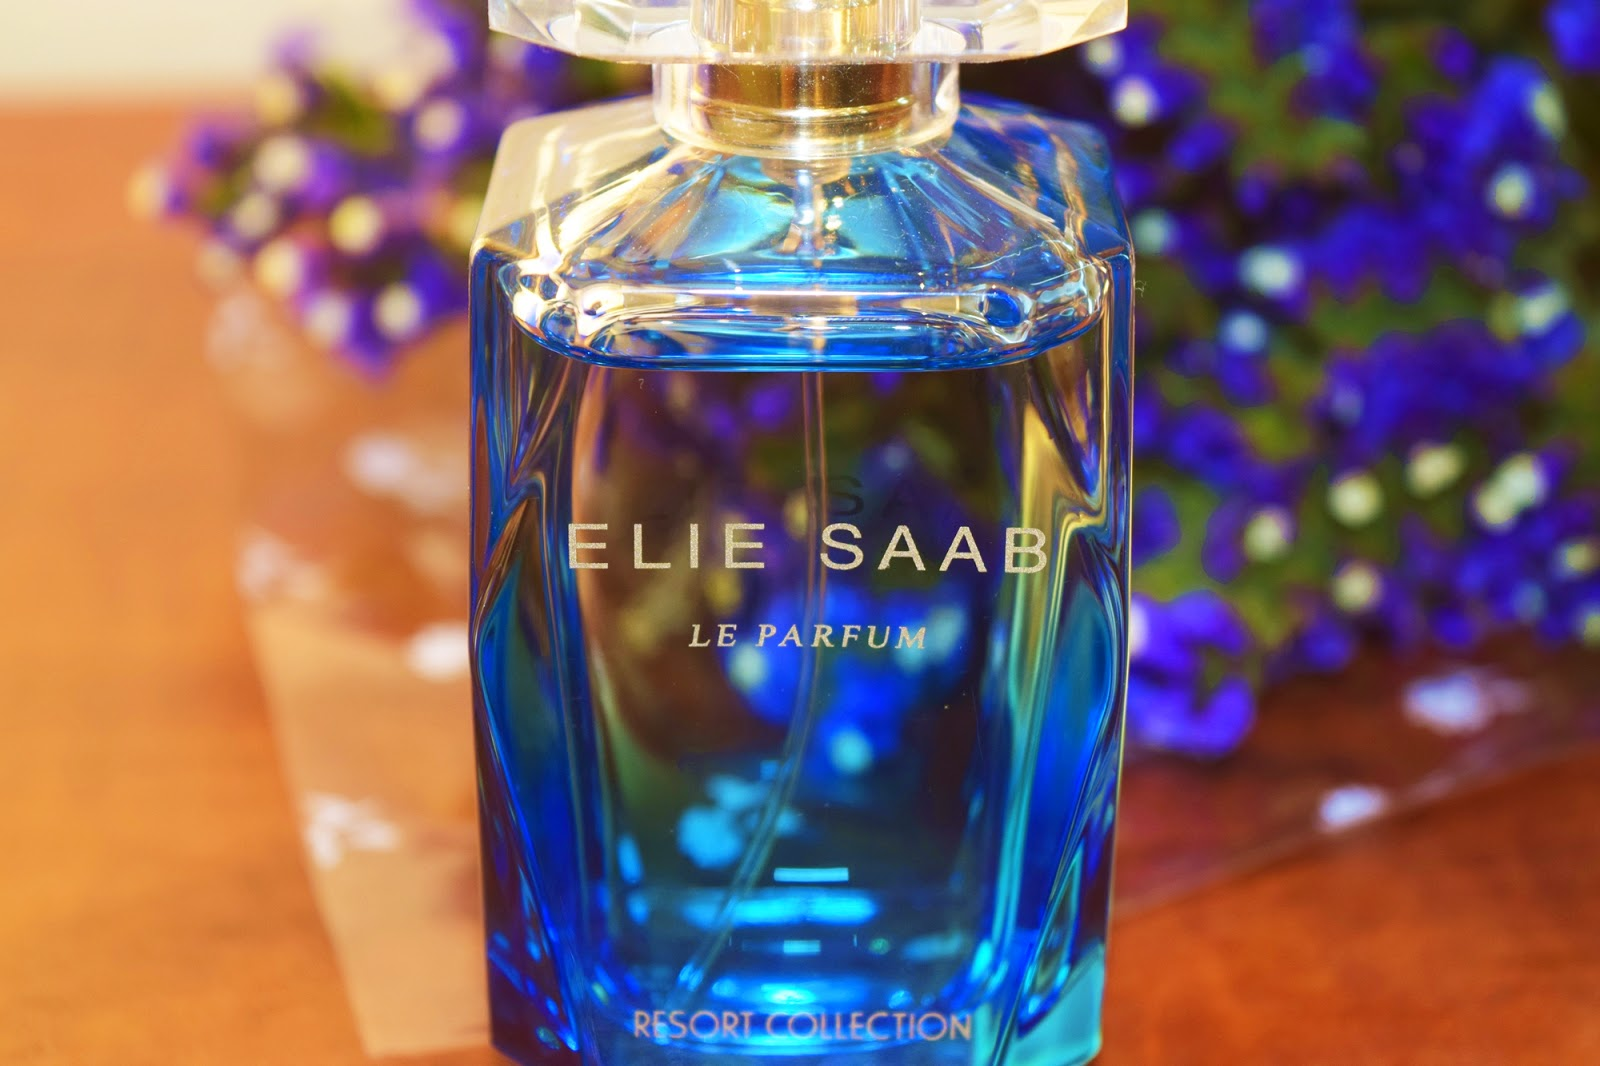 Elie Saab Le Parfum Resort Collection 2015